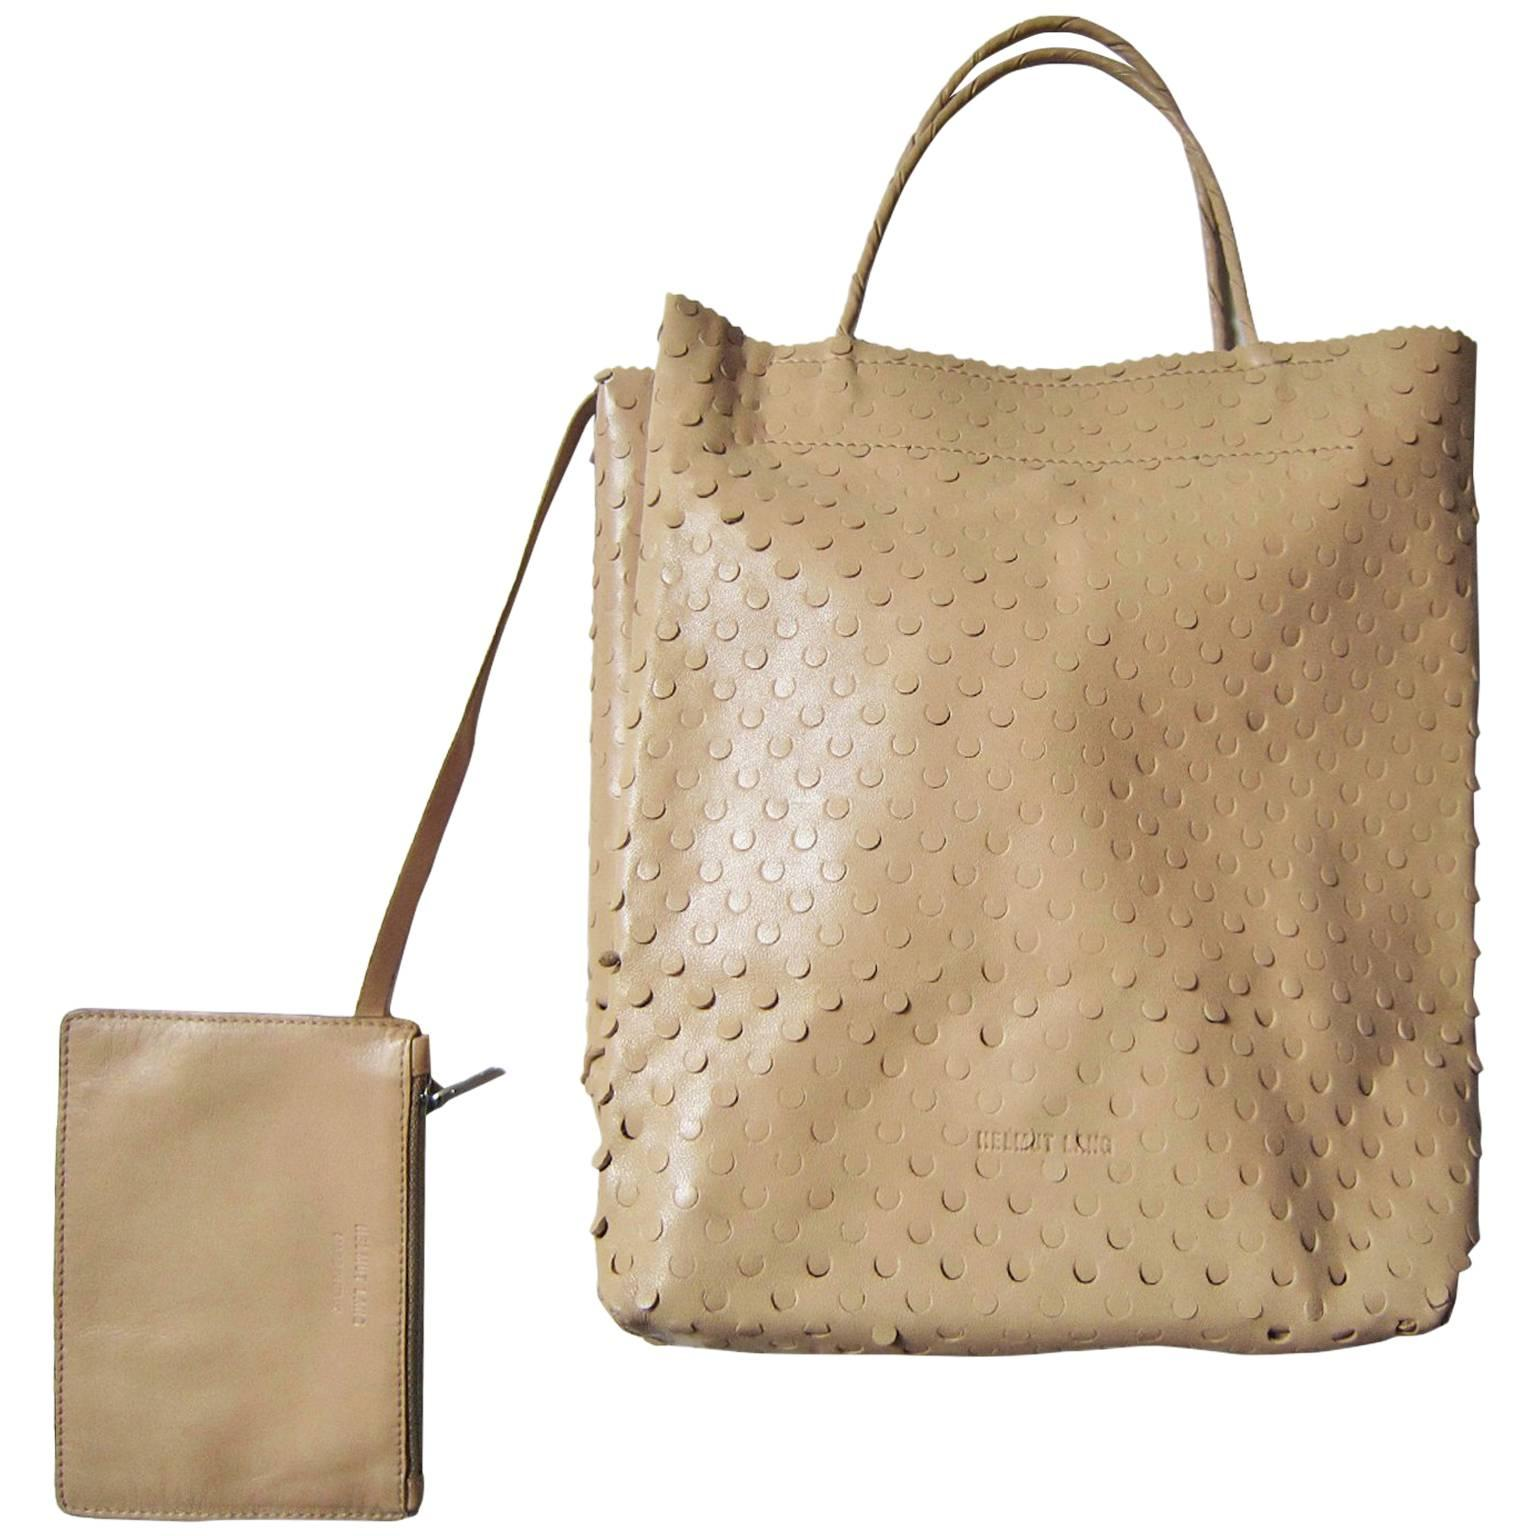 Helmut Lang Archive Beige Leather Bag A8nzJUf